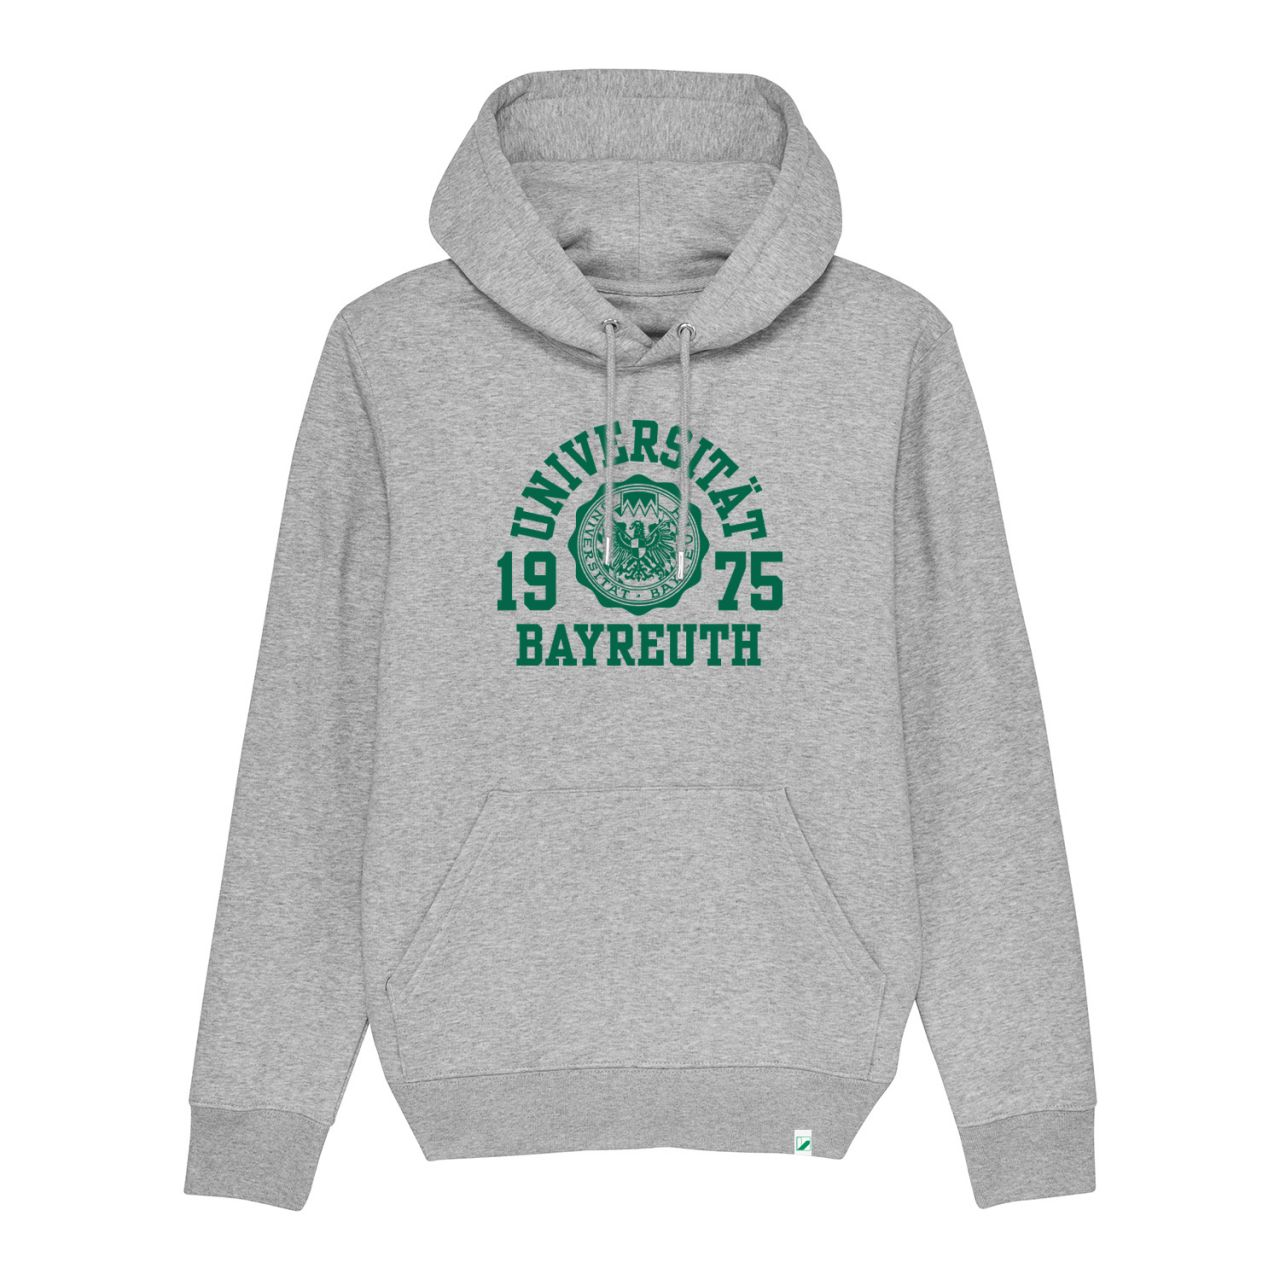 Unisex Organic Hooded Sweatshirt, heather grey, marshall.green